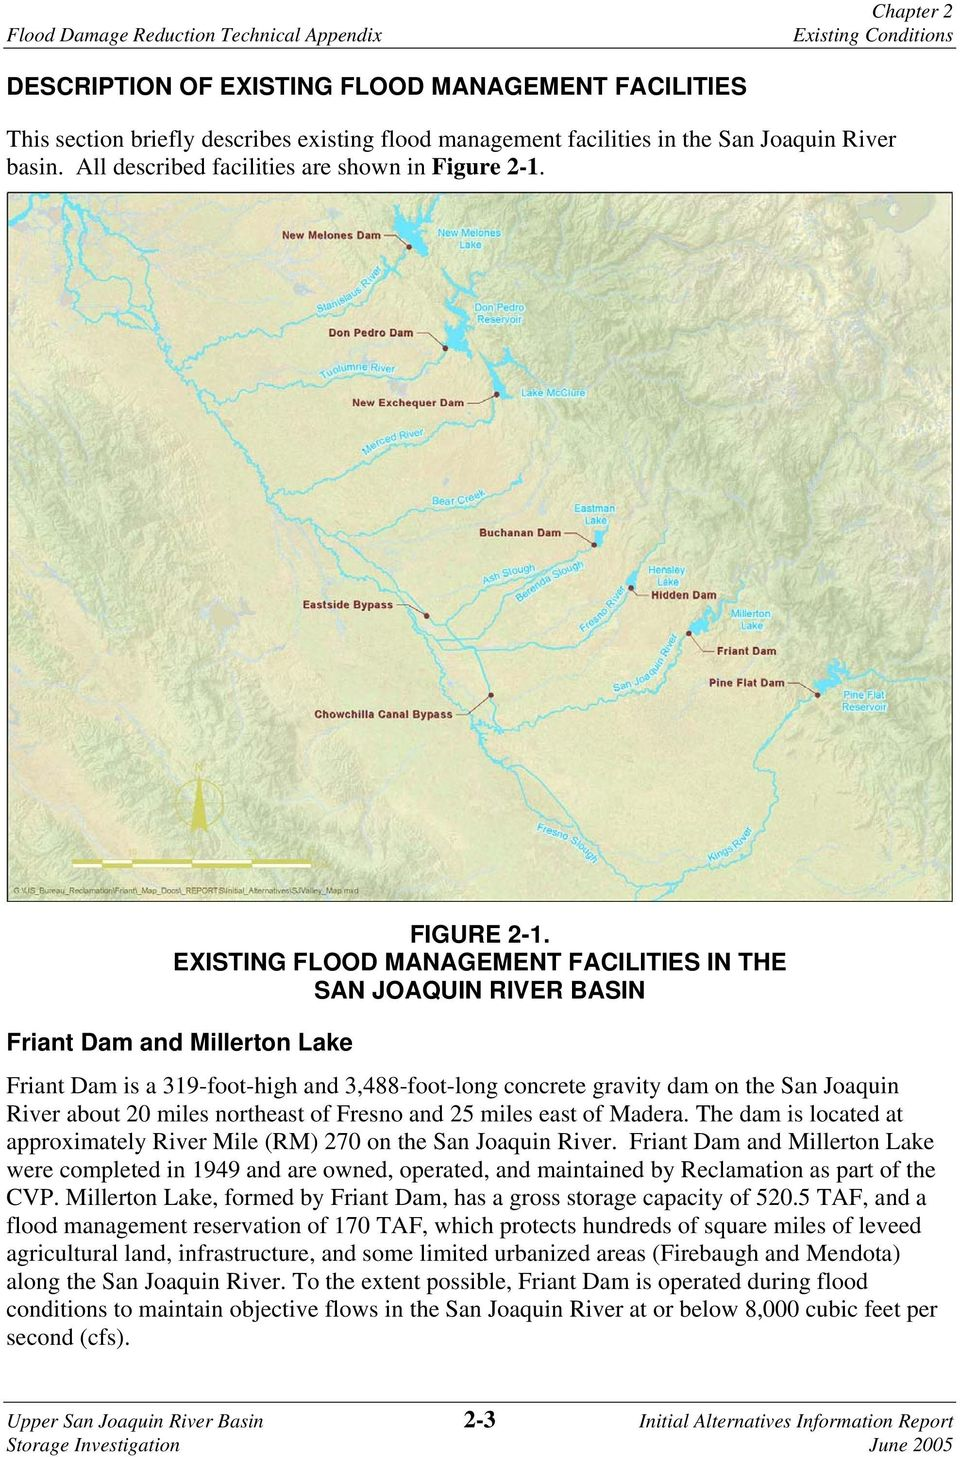 EXISTING FLOOD MANAGEMENT FACILITIES IN THE SAN JOAQUIN RIVER BASIN Friant Dam and Millerton Lake Friant Dam is a 319-foot-high and 3,488-foot-long concrete gravity dam on the San Joaquin River about